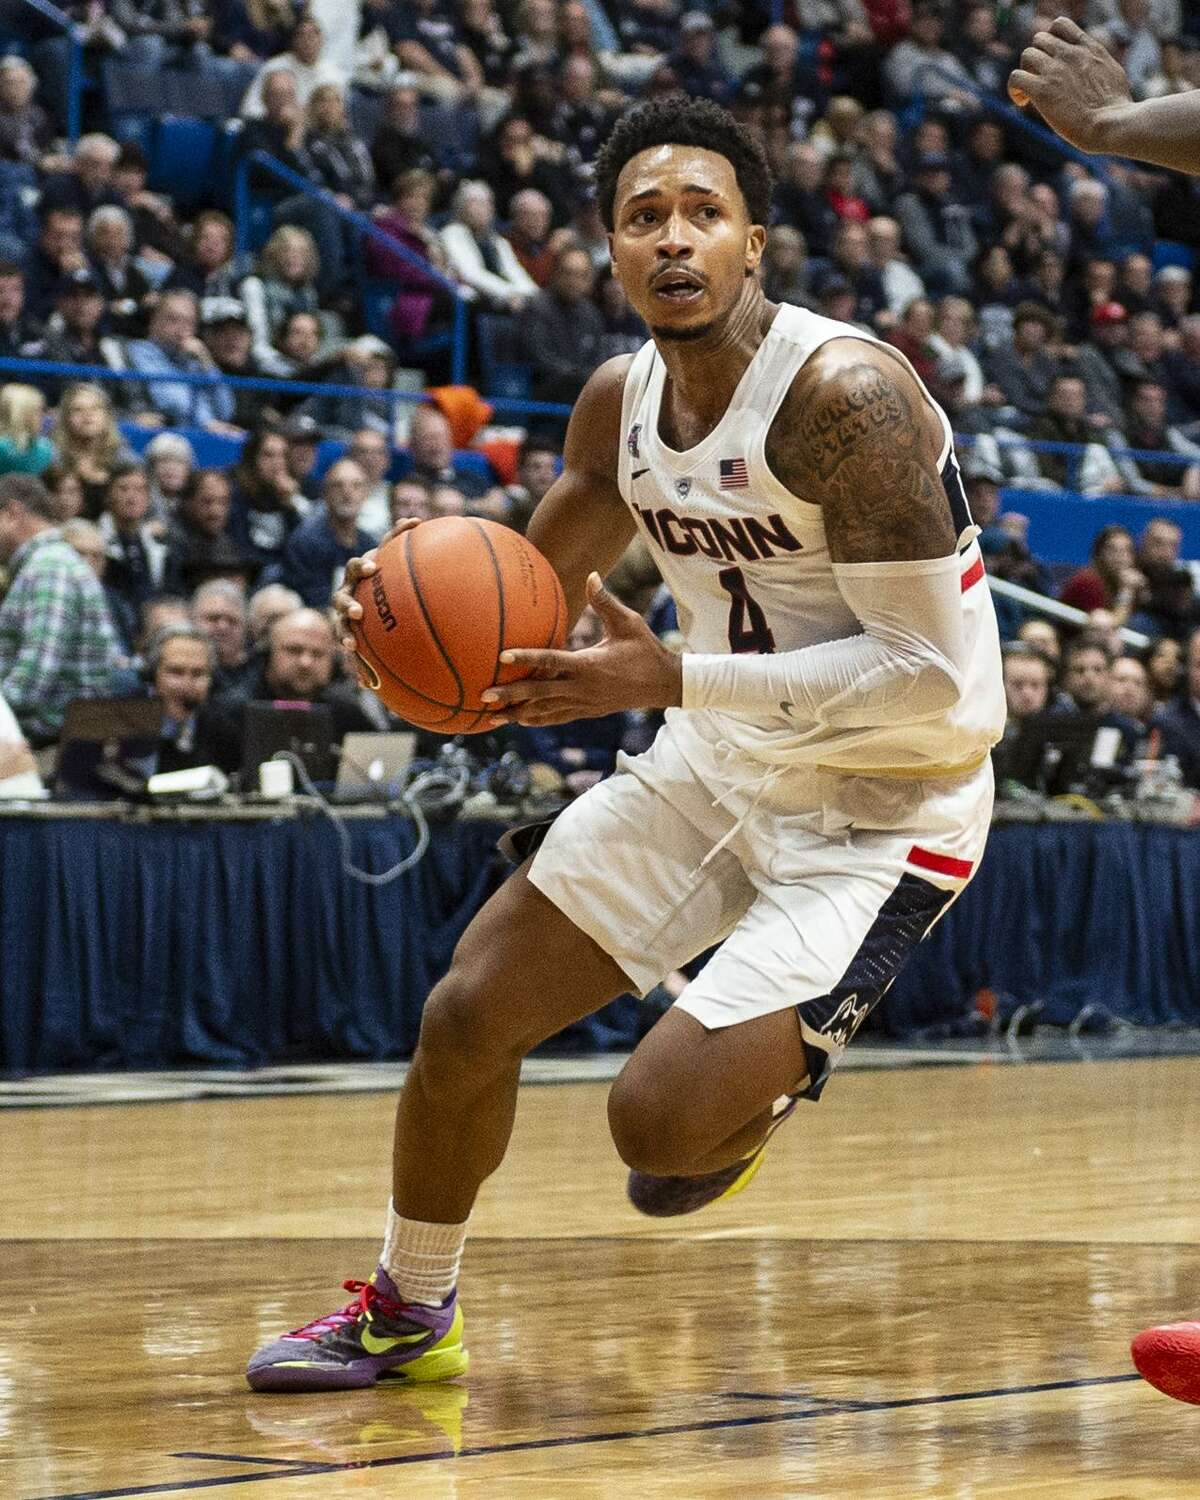 UConn senior Jalen Adams isn't projected to be selected in the 2019 NBA Draft, according to numerous mock draft websites.